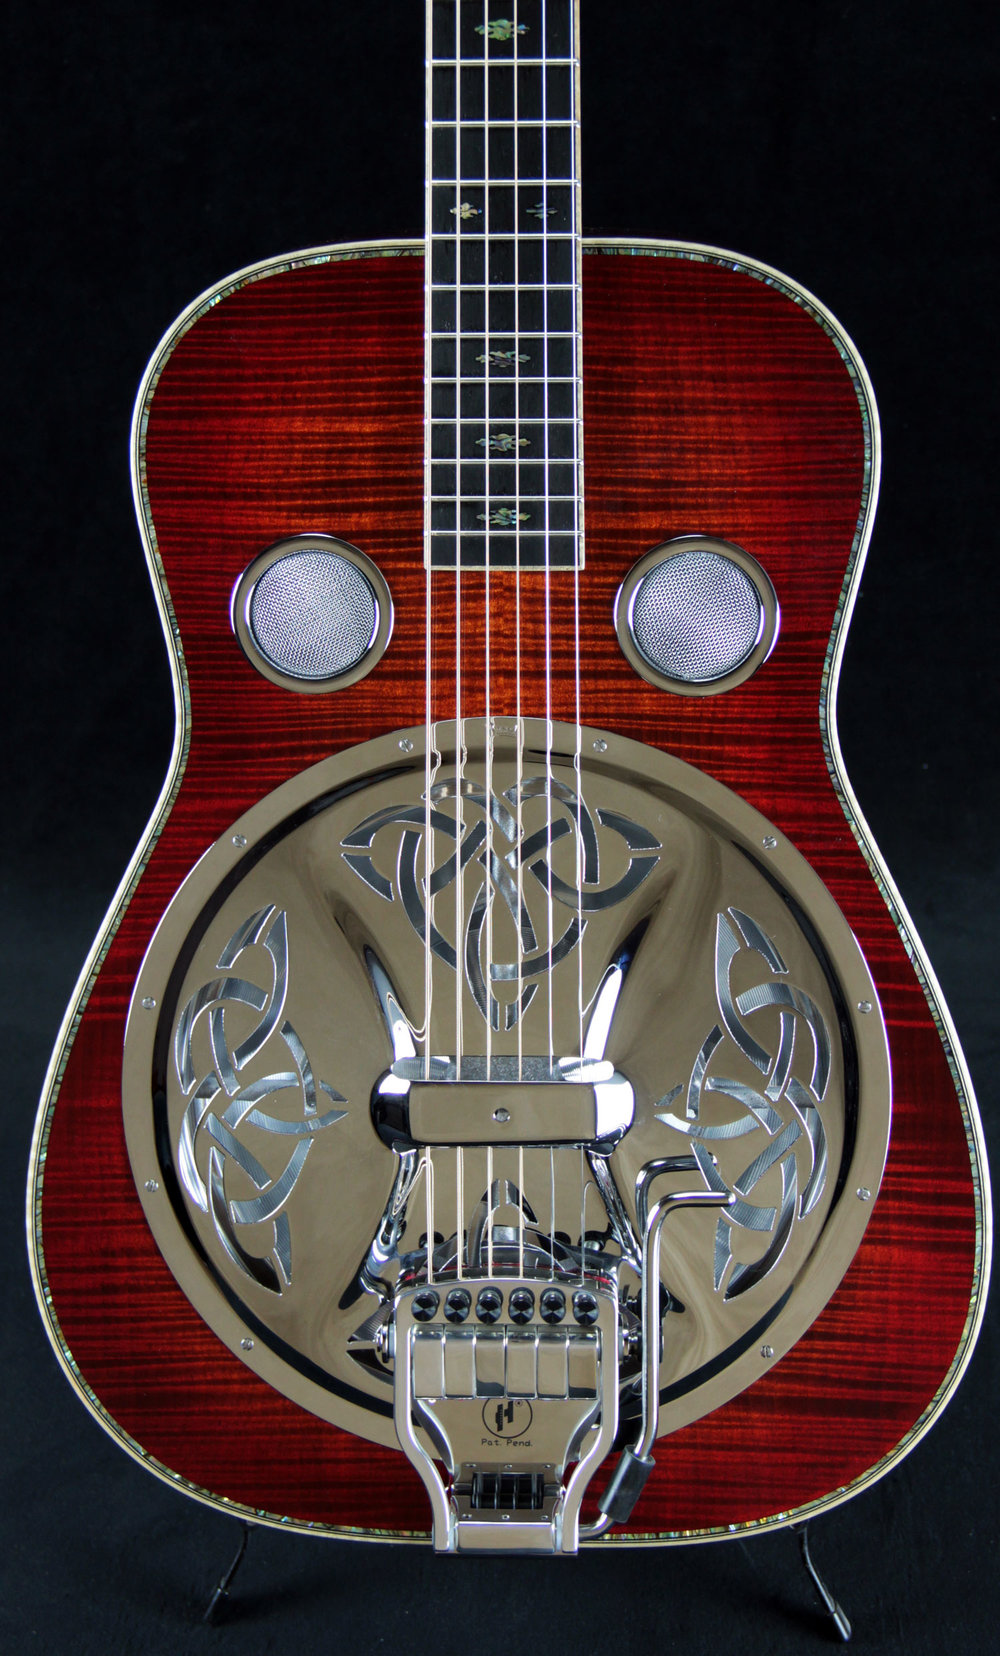 E-Model-Maple-Cherry-Fire-Burst-inlay-with-hiphsot-Face.jpg